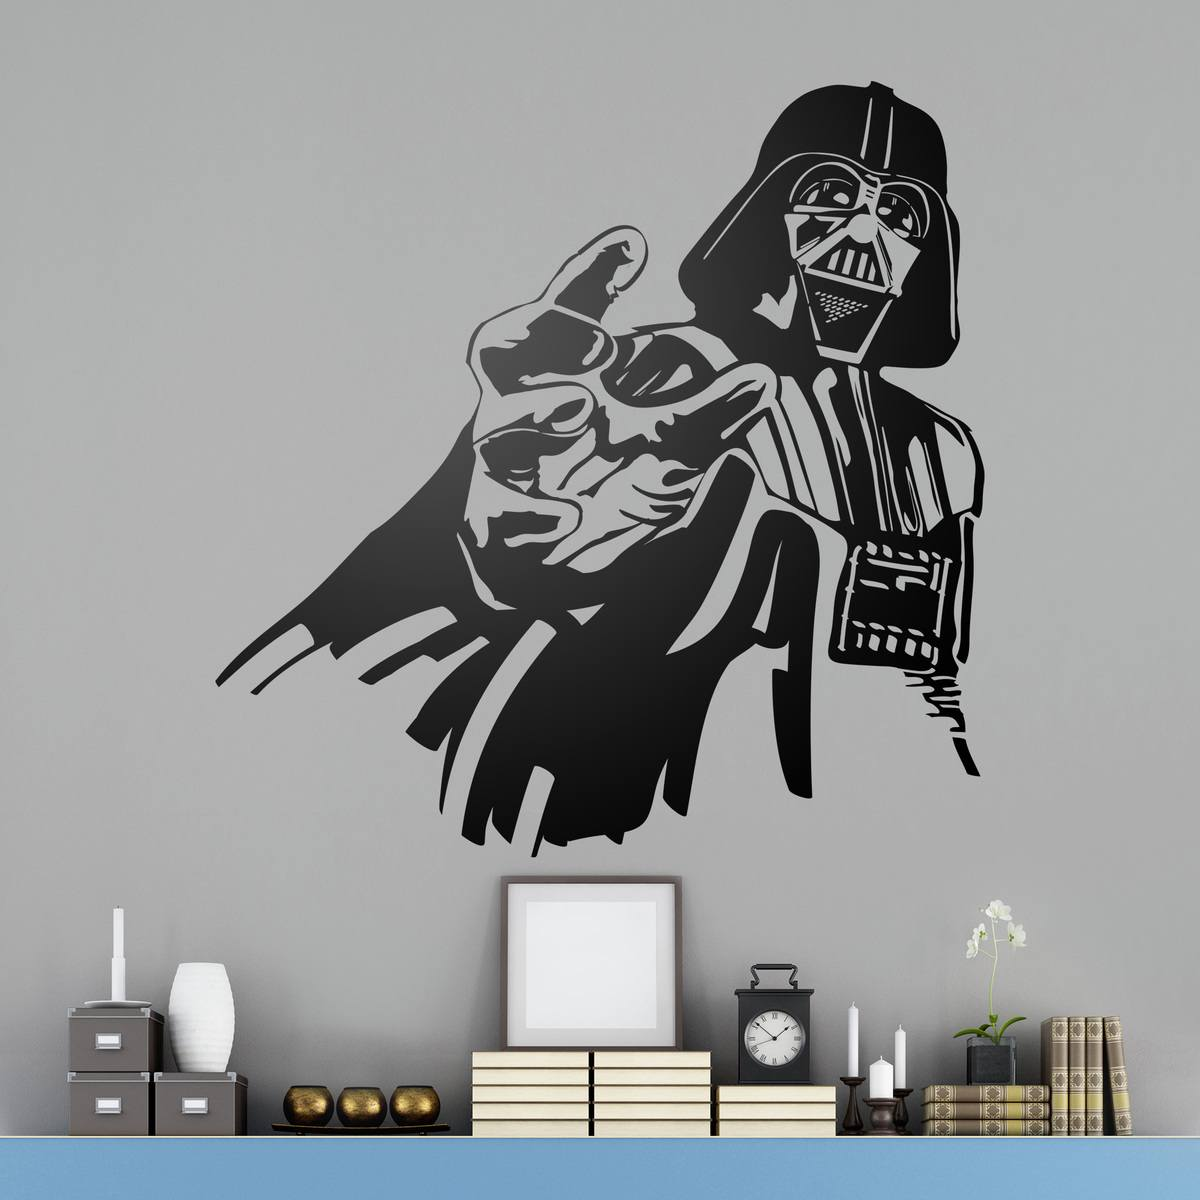 compra vinilos decorativos de darth vader teleadhesivo. Black Bedroom Furniture Sets. Home Design Ideas